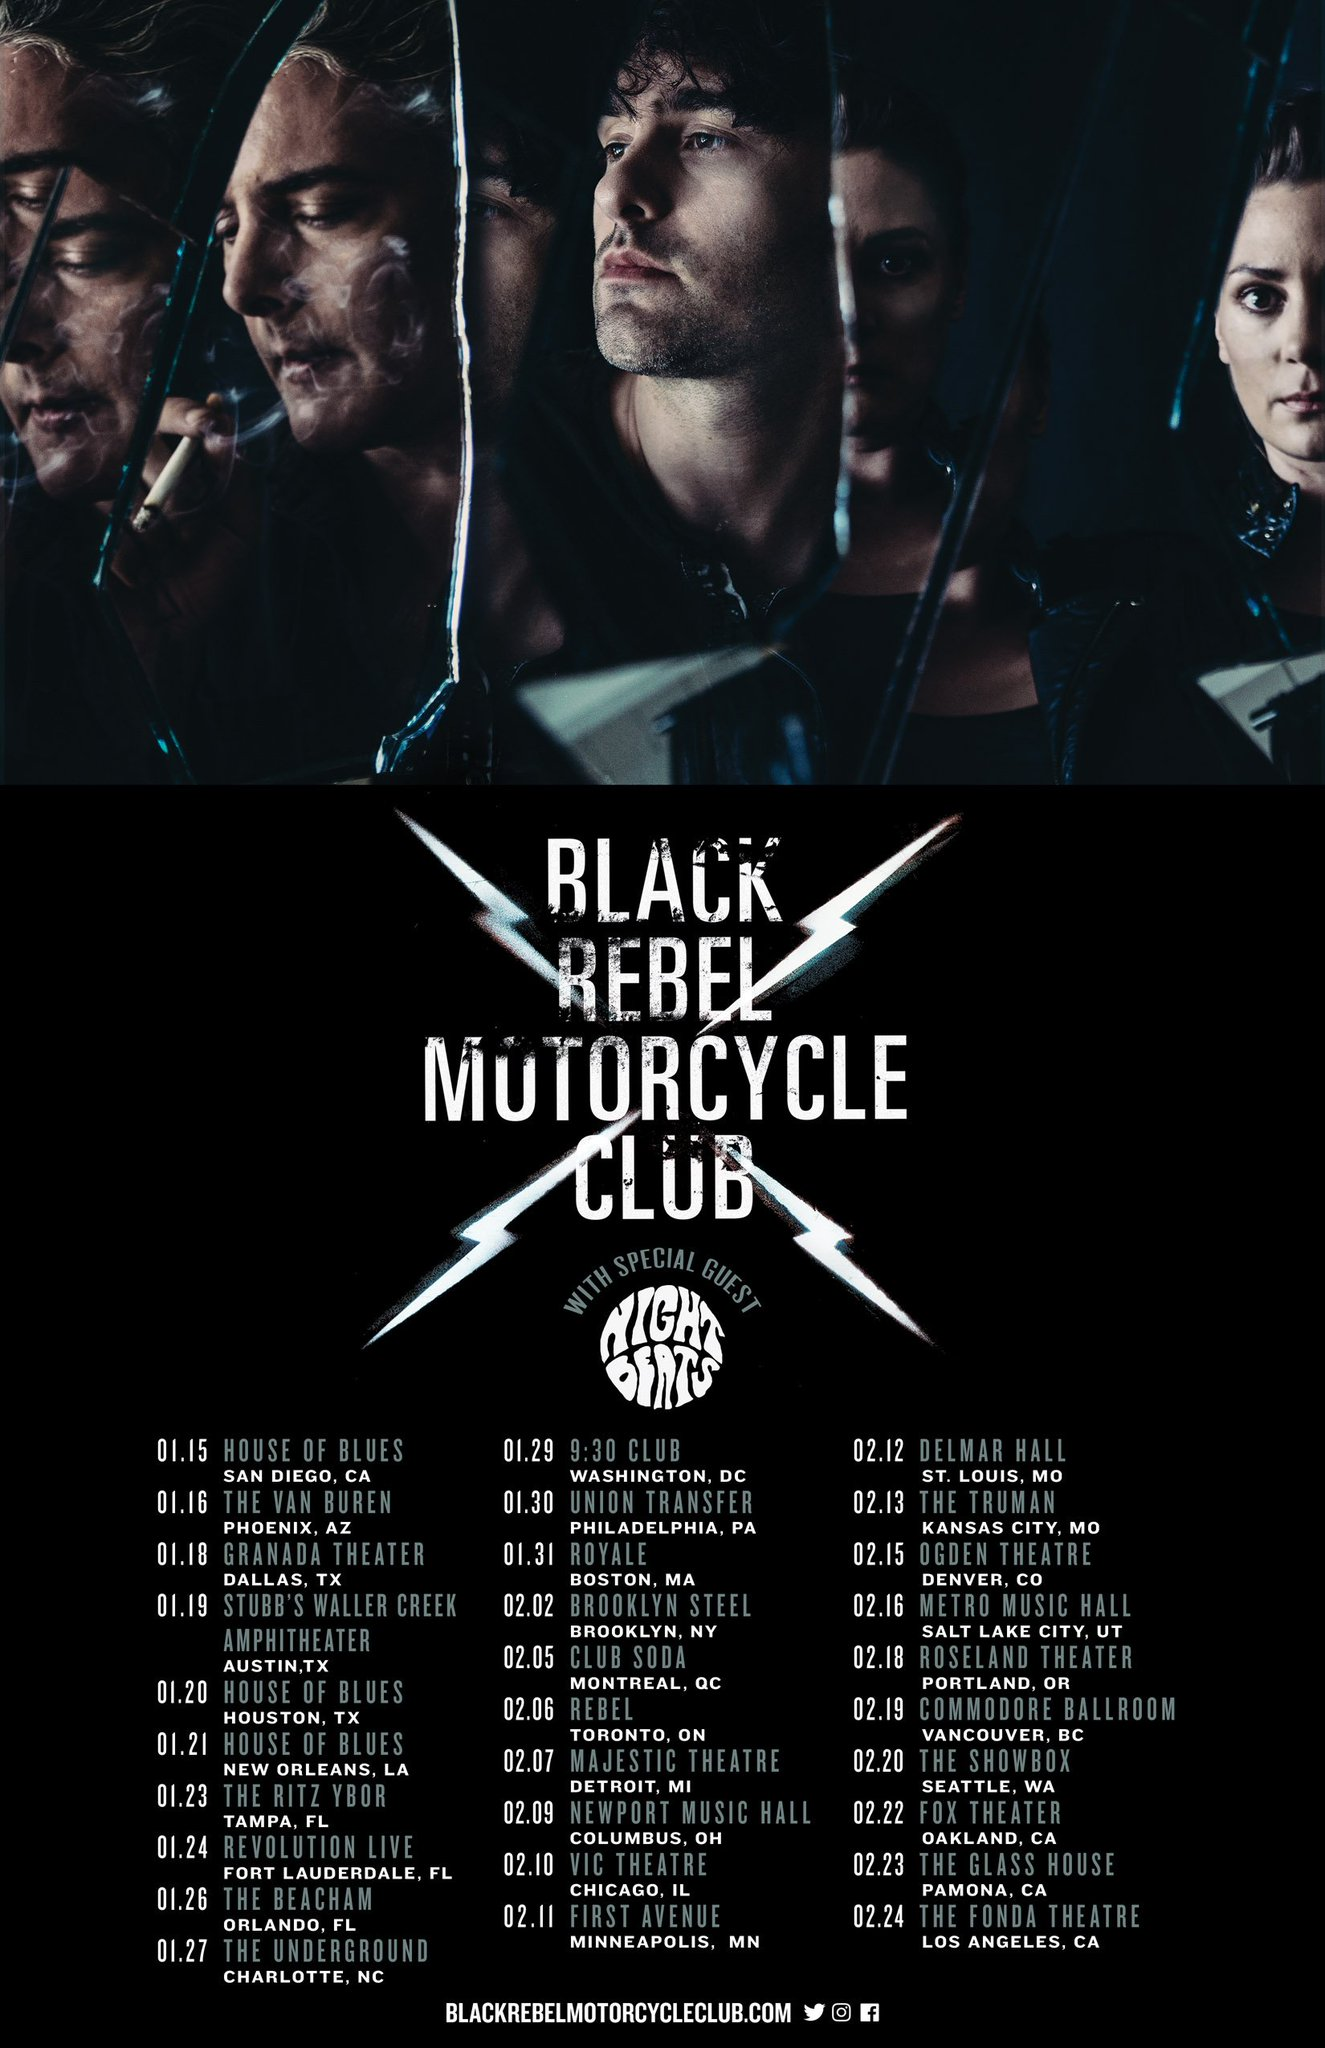 Tickets are on-sale now for Black Rebel Motorcycle Club's US tour! https://t.co/jgwoQUJEwW https://t.co/pGo2xeobZ2